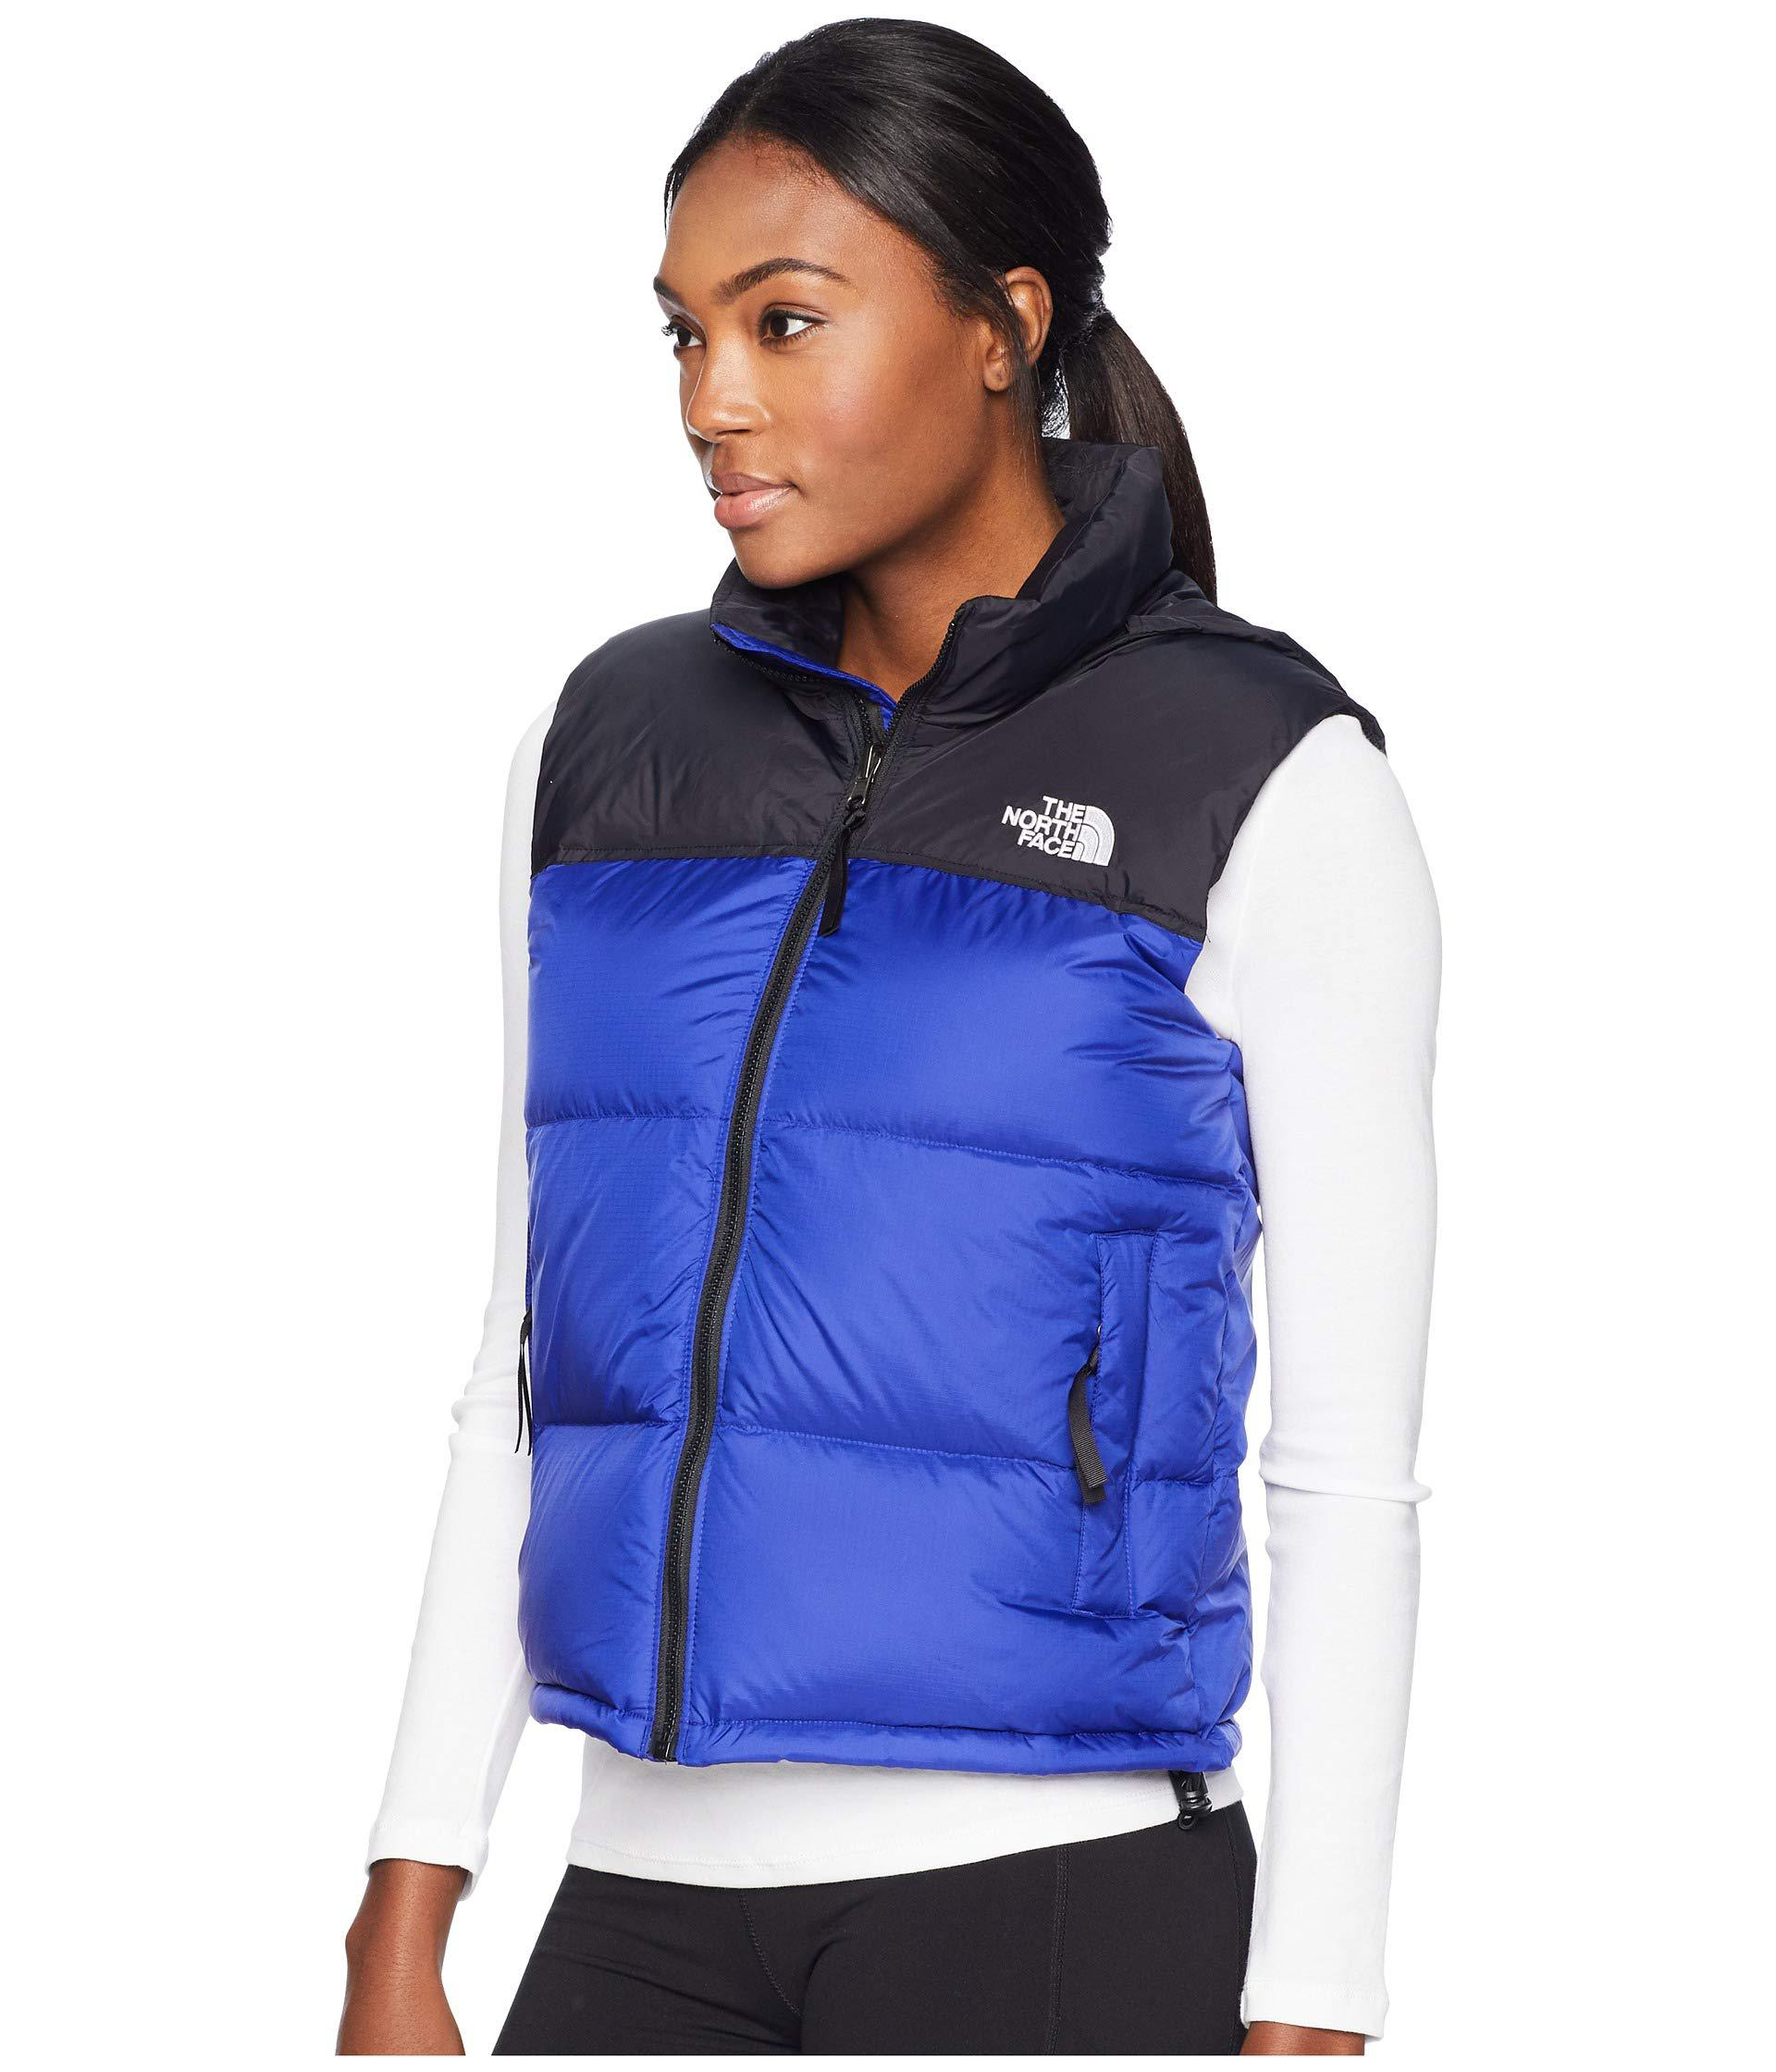 Lyst - The North Face 1996 Retro Nuptse Vest (tumbleweed Green) Women s  Vest in Blue - Save 1% 890ee64d8